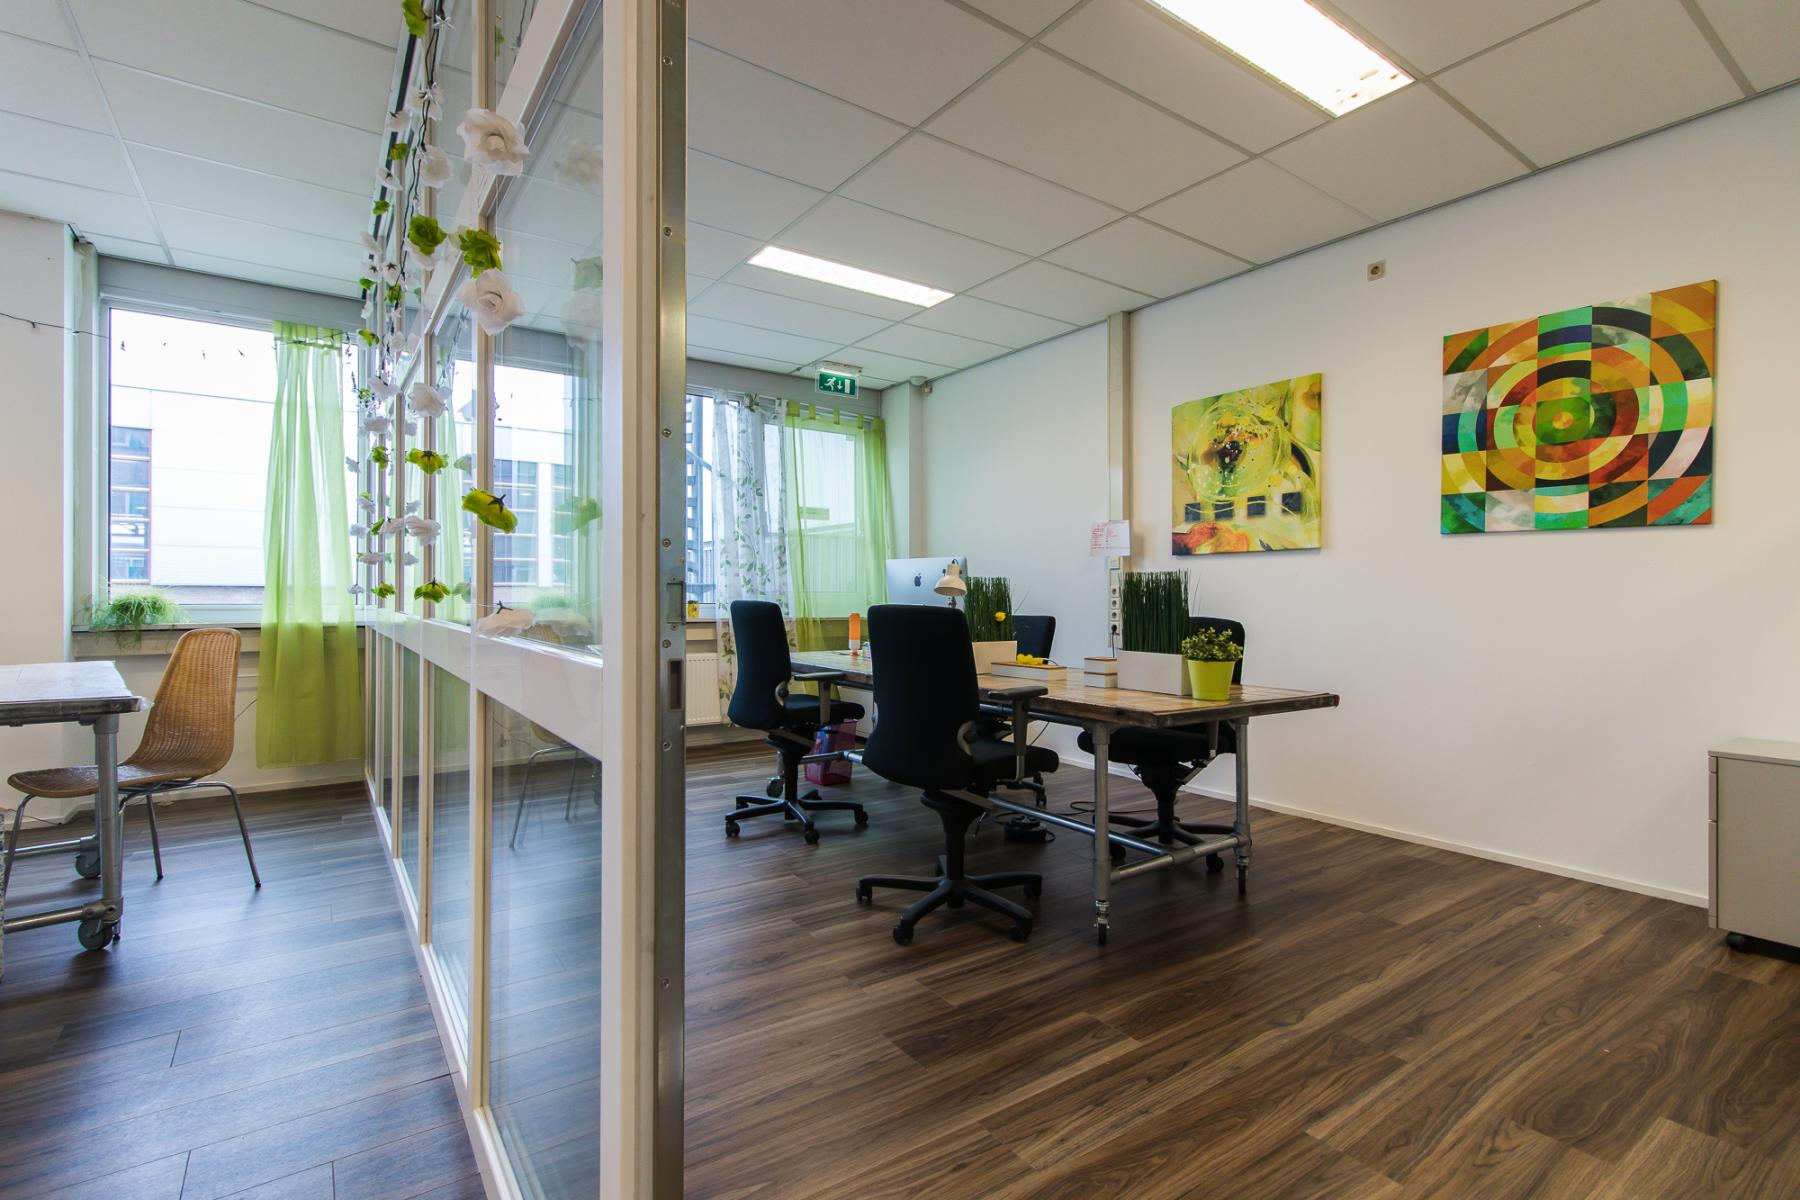 Also flexdesks and shared office rooms for rent